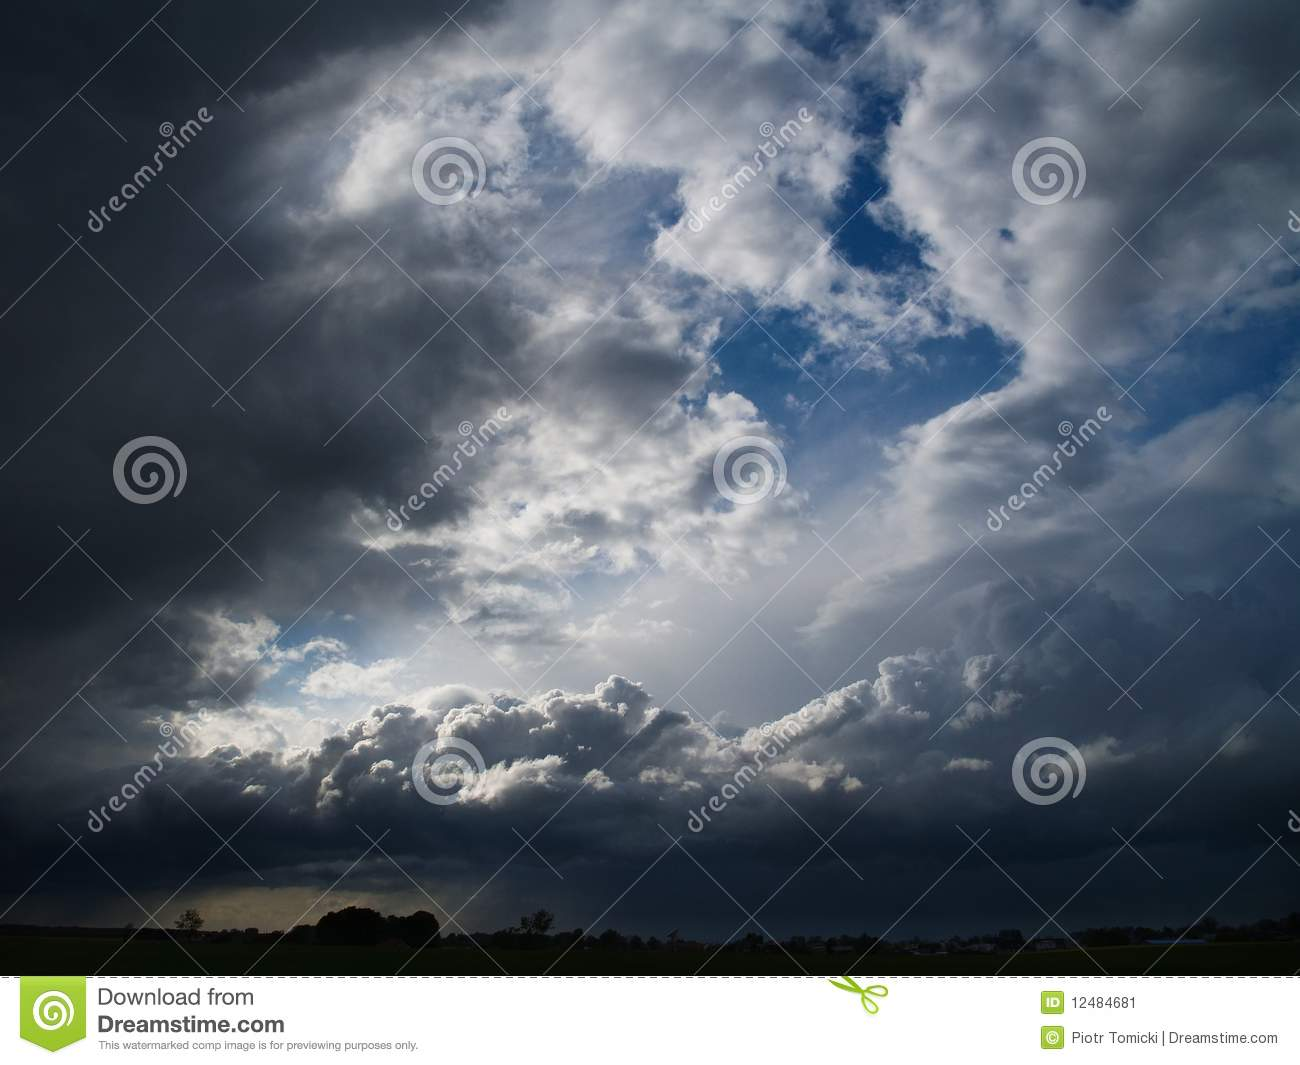 e63b4ab4f Overcast Sky With Storm Clouds Stock Image - Image of condensation ...